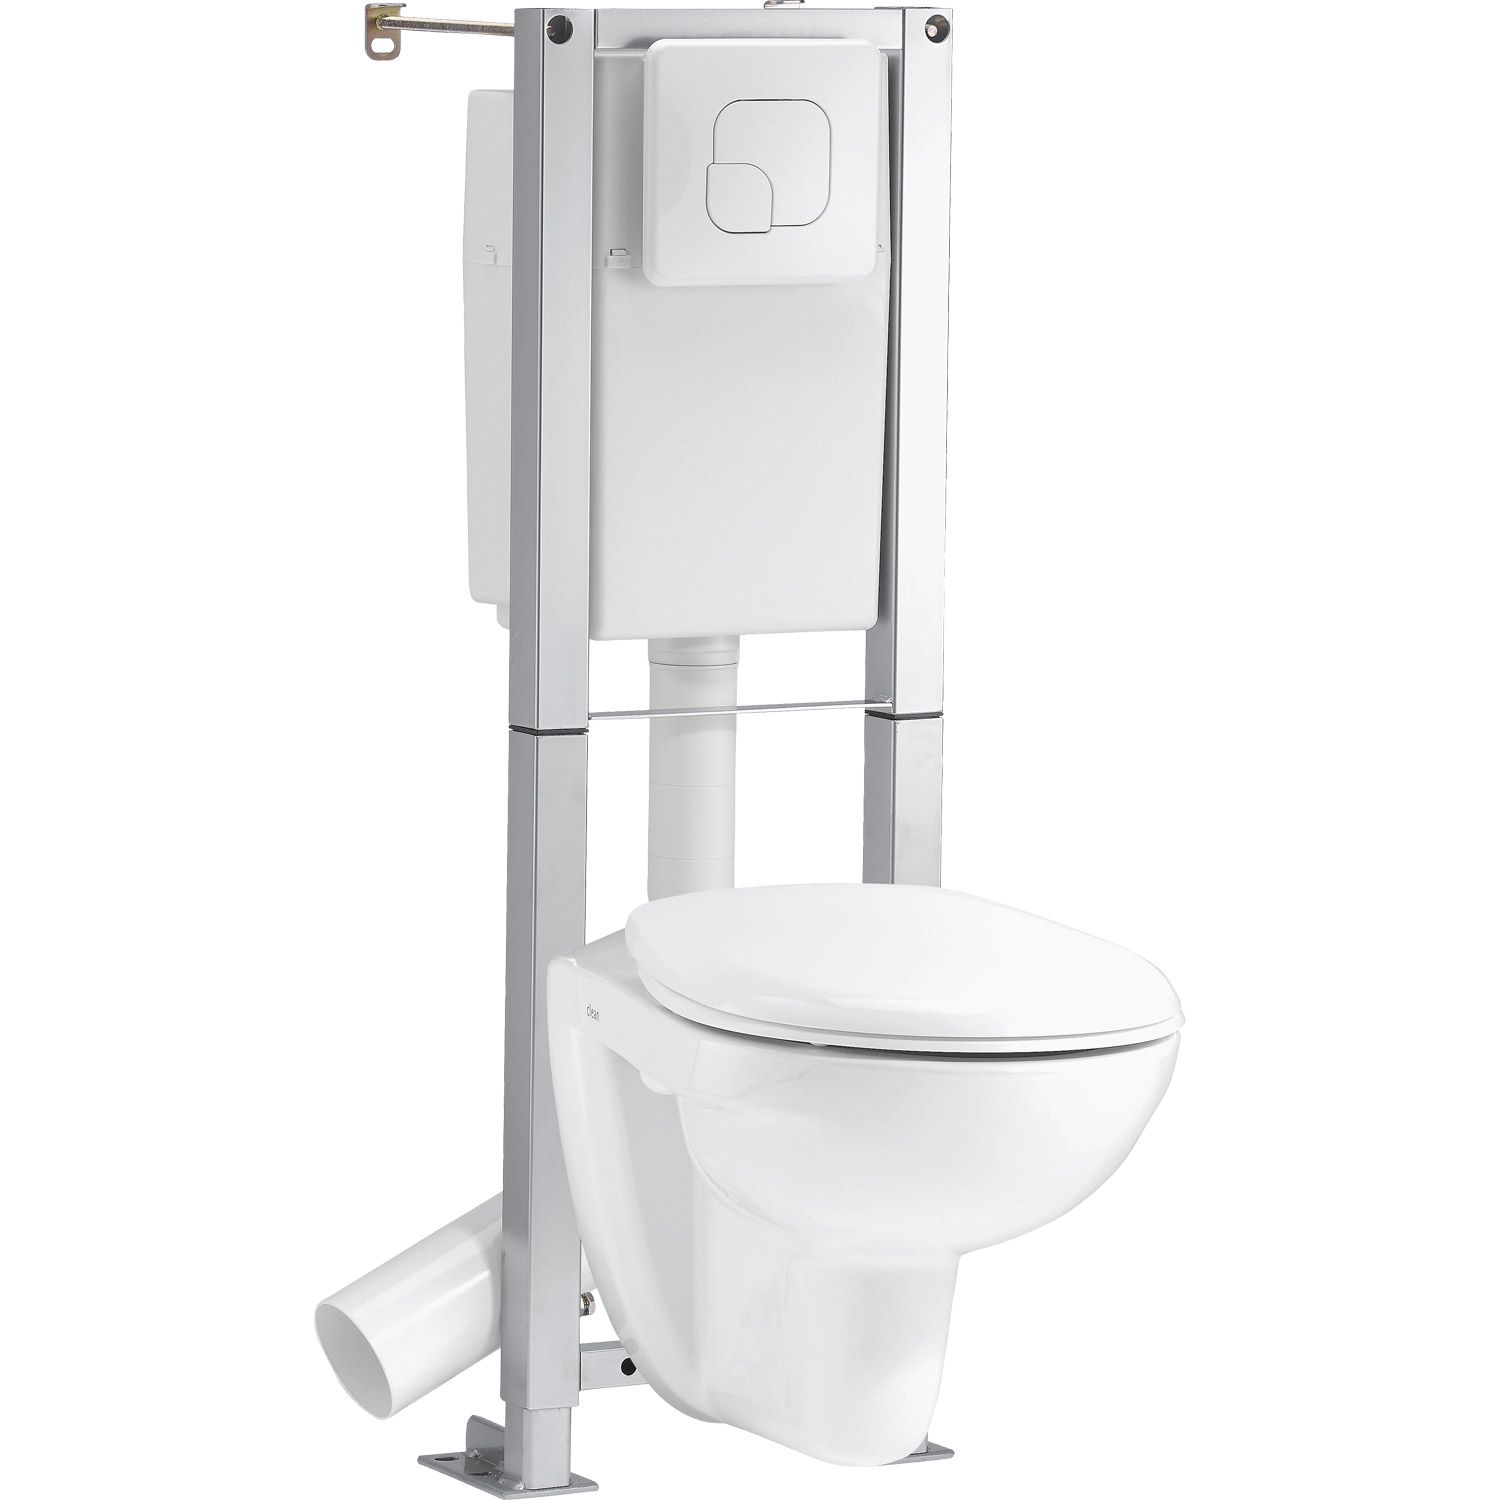 Pack wc suspendu autoportant sensea remix blanc salle de bain pinterest - Wc suspendu japonais ...